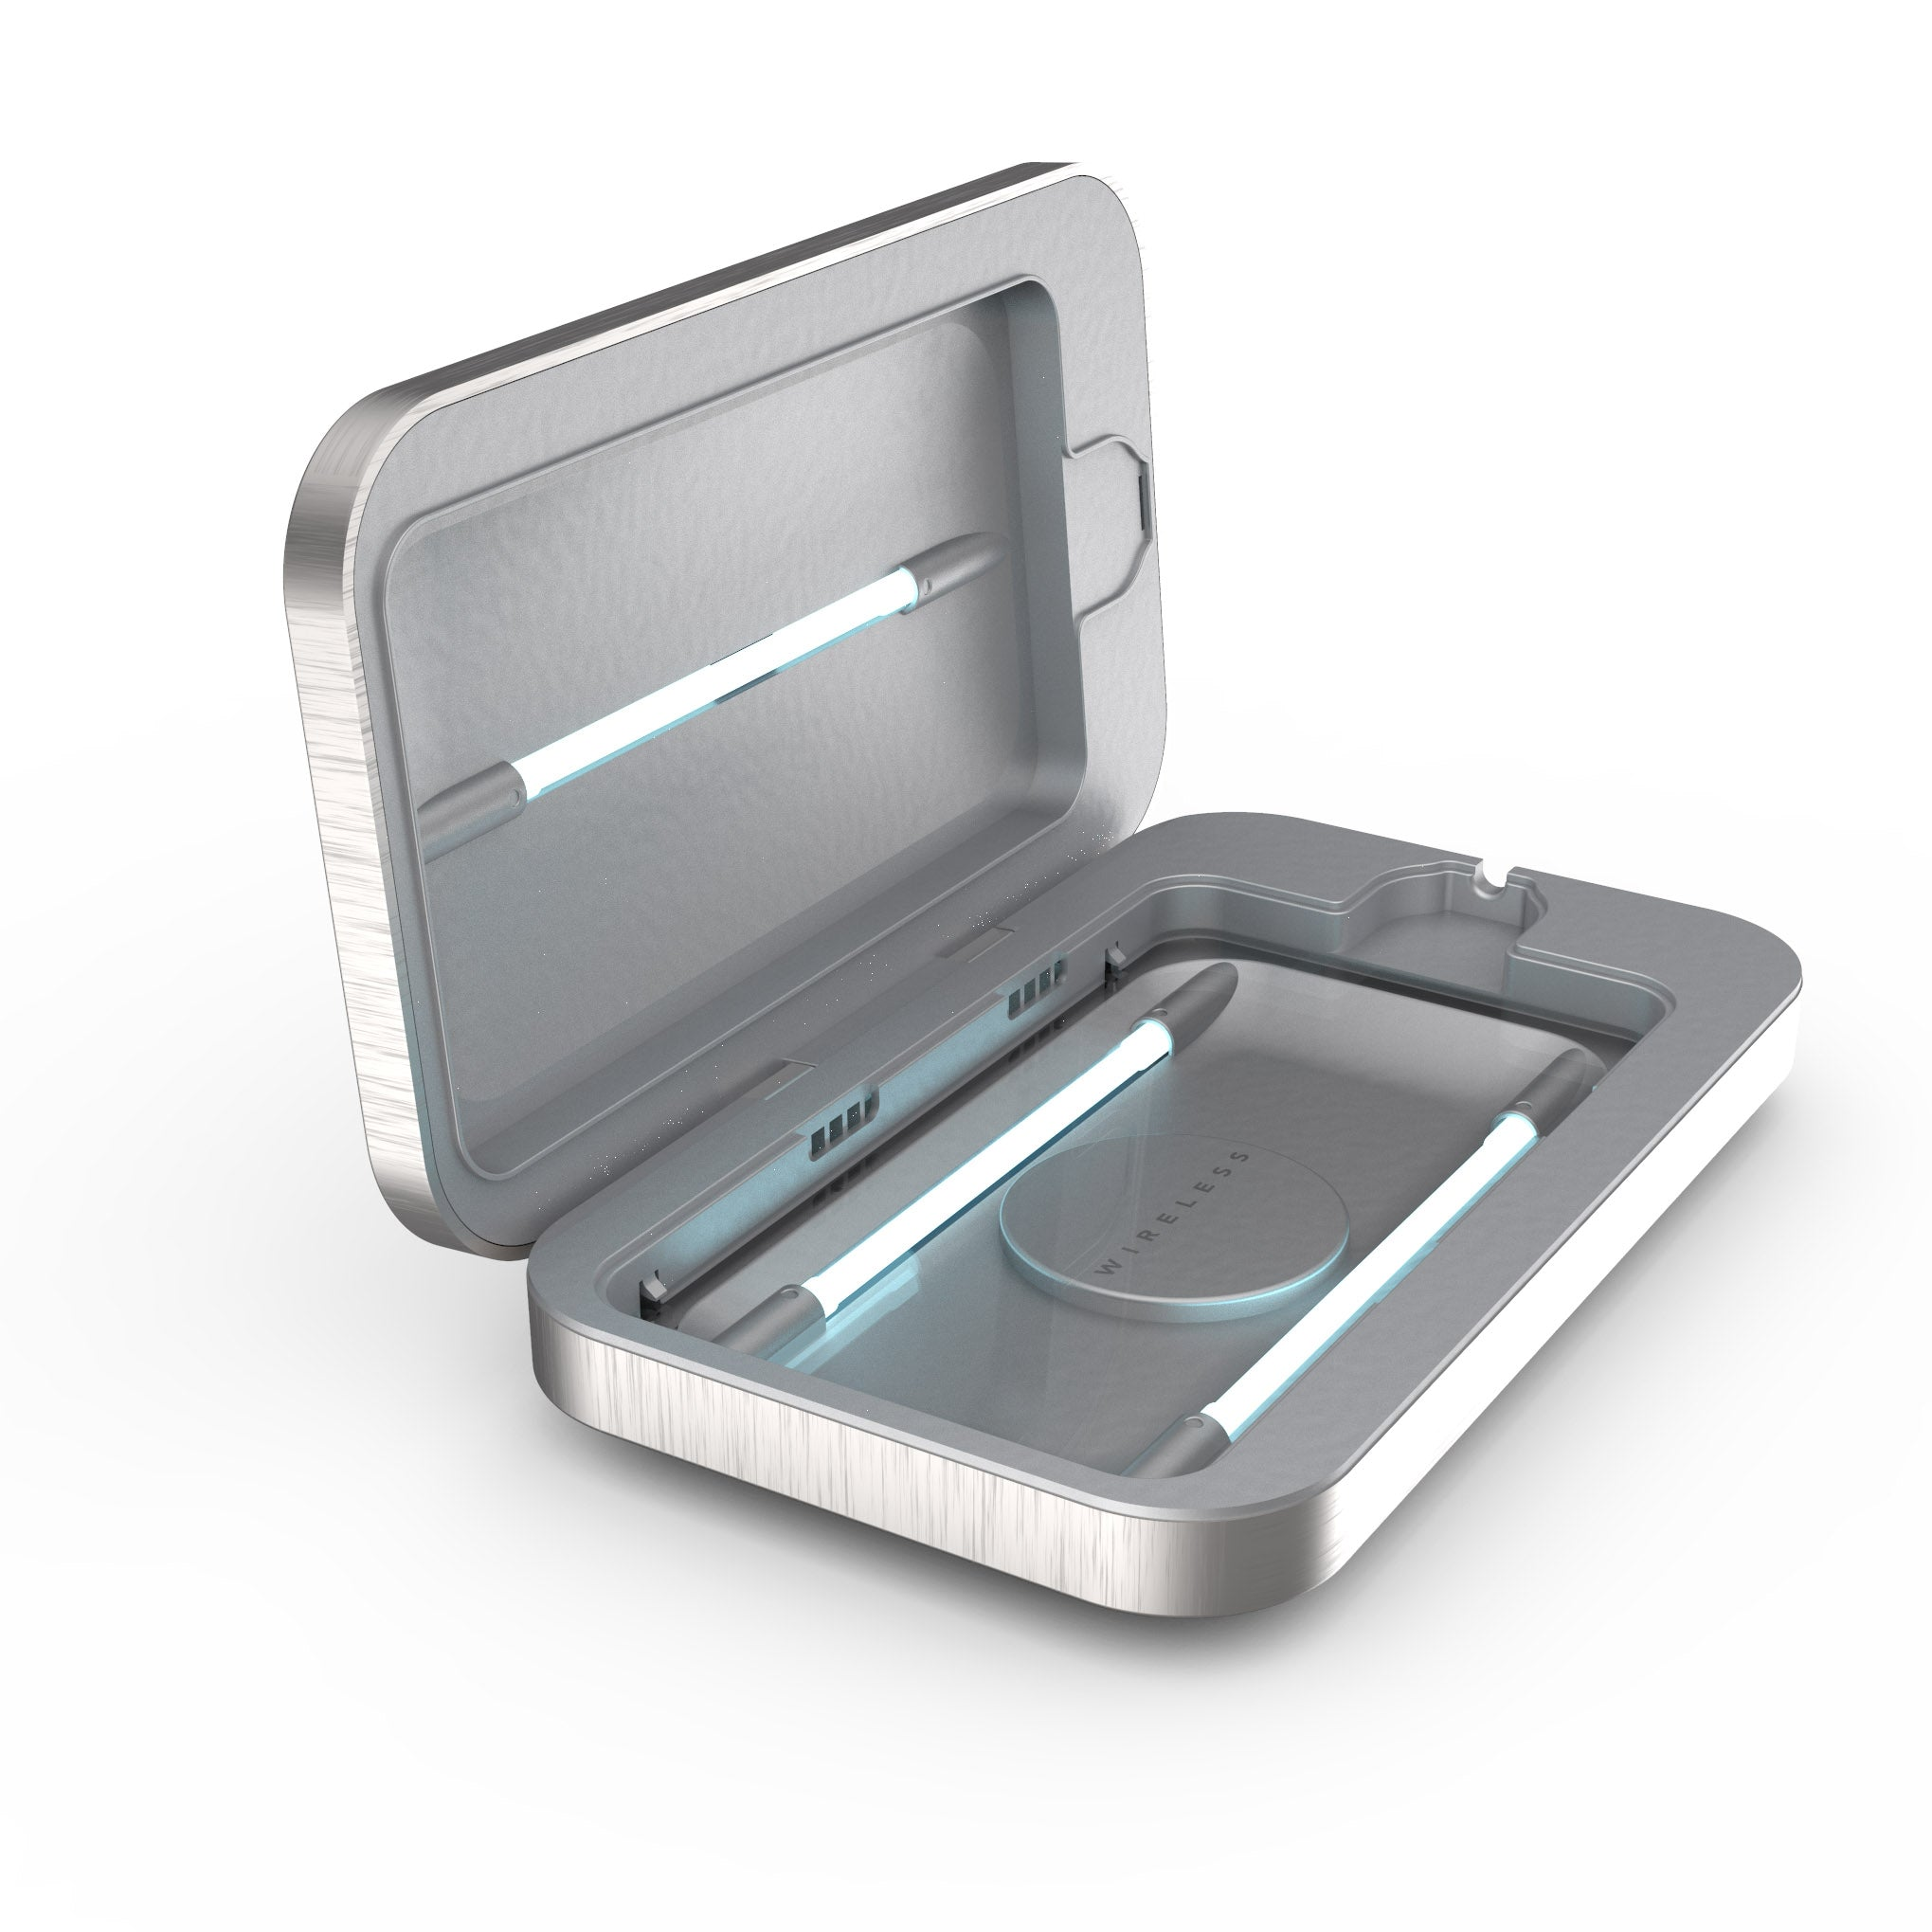 PhoneSoap Wireless - Open